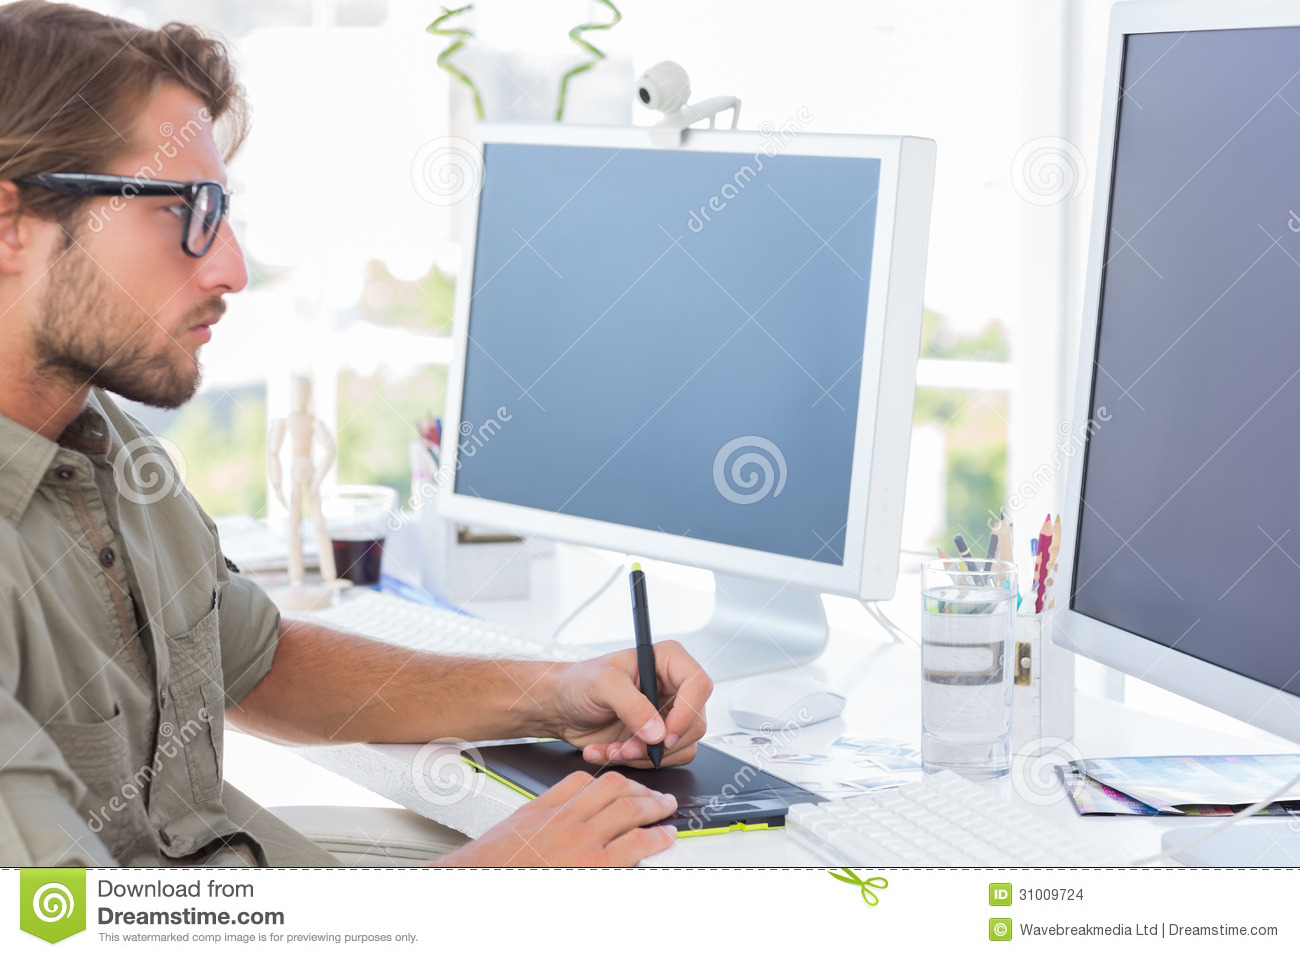 Graphic Designer Using Graphics Tablet Stock Images - Image: 31009724